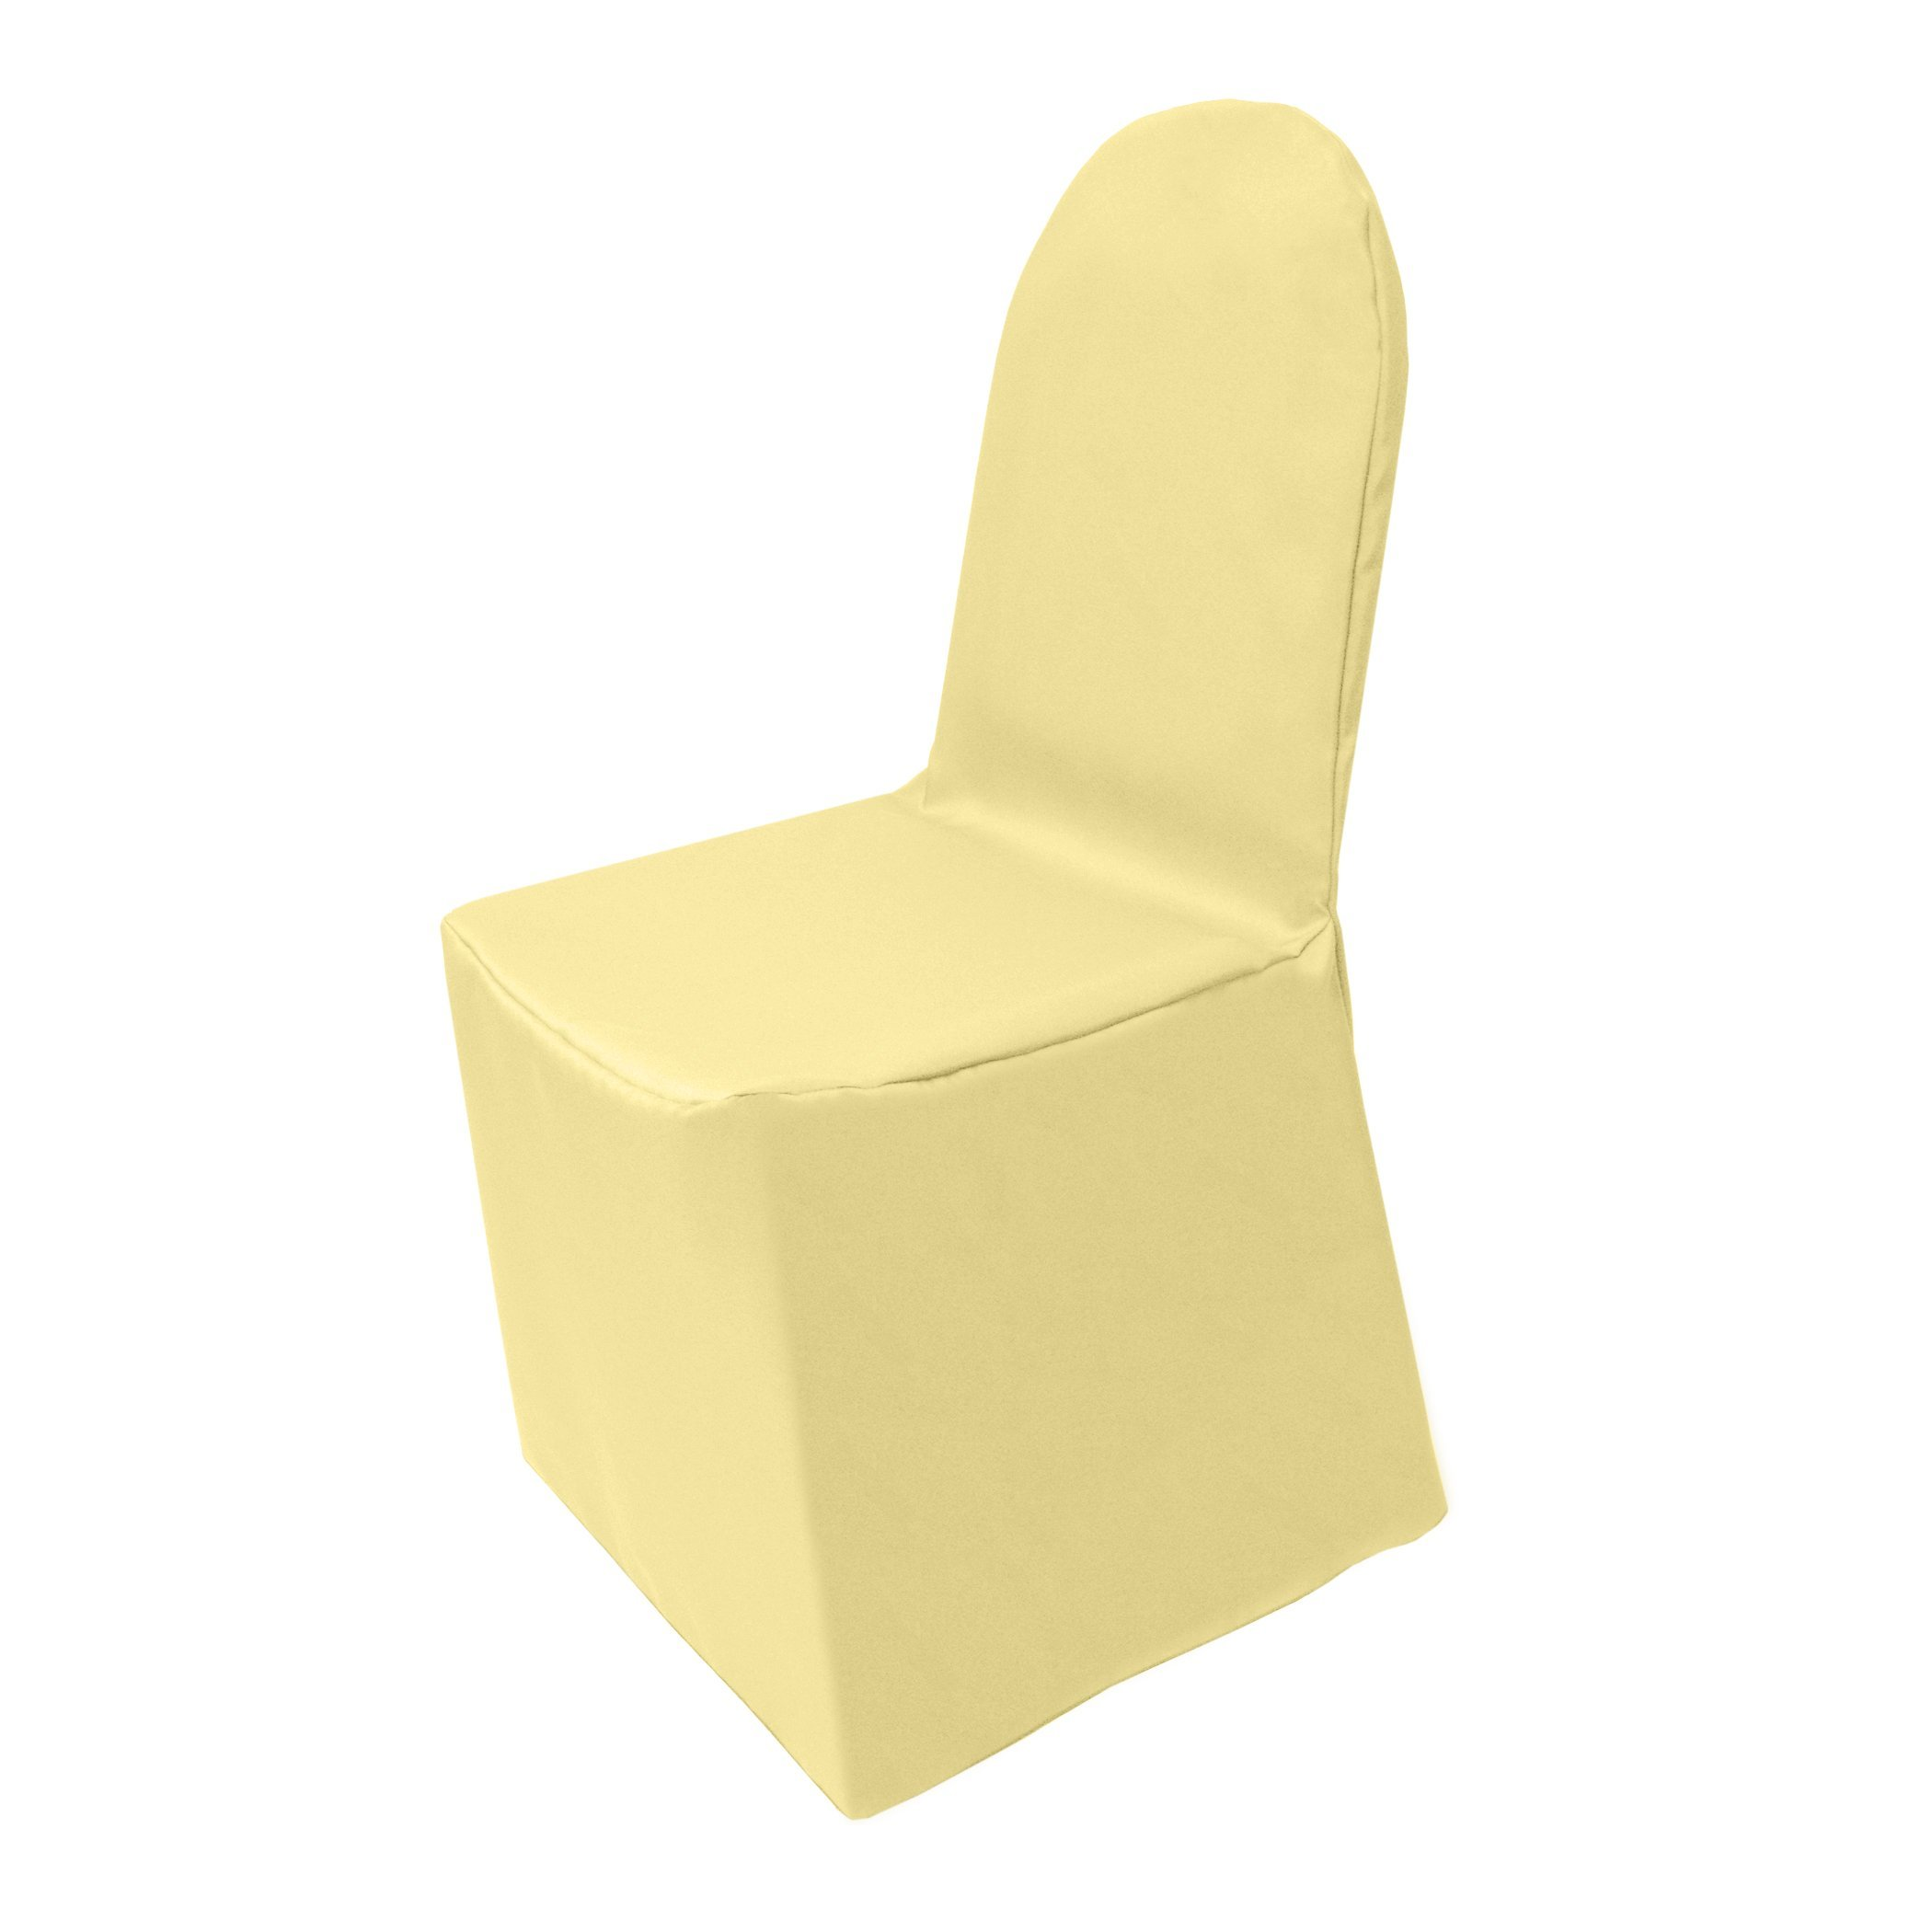 Ultimate Textile (2 Pack) Polyester Universal Chair Cover - for Wedding or Party use, Cornsilk Light Yellow